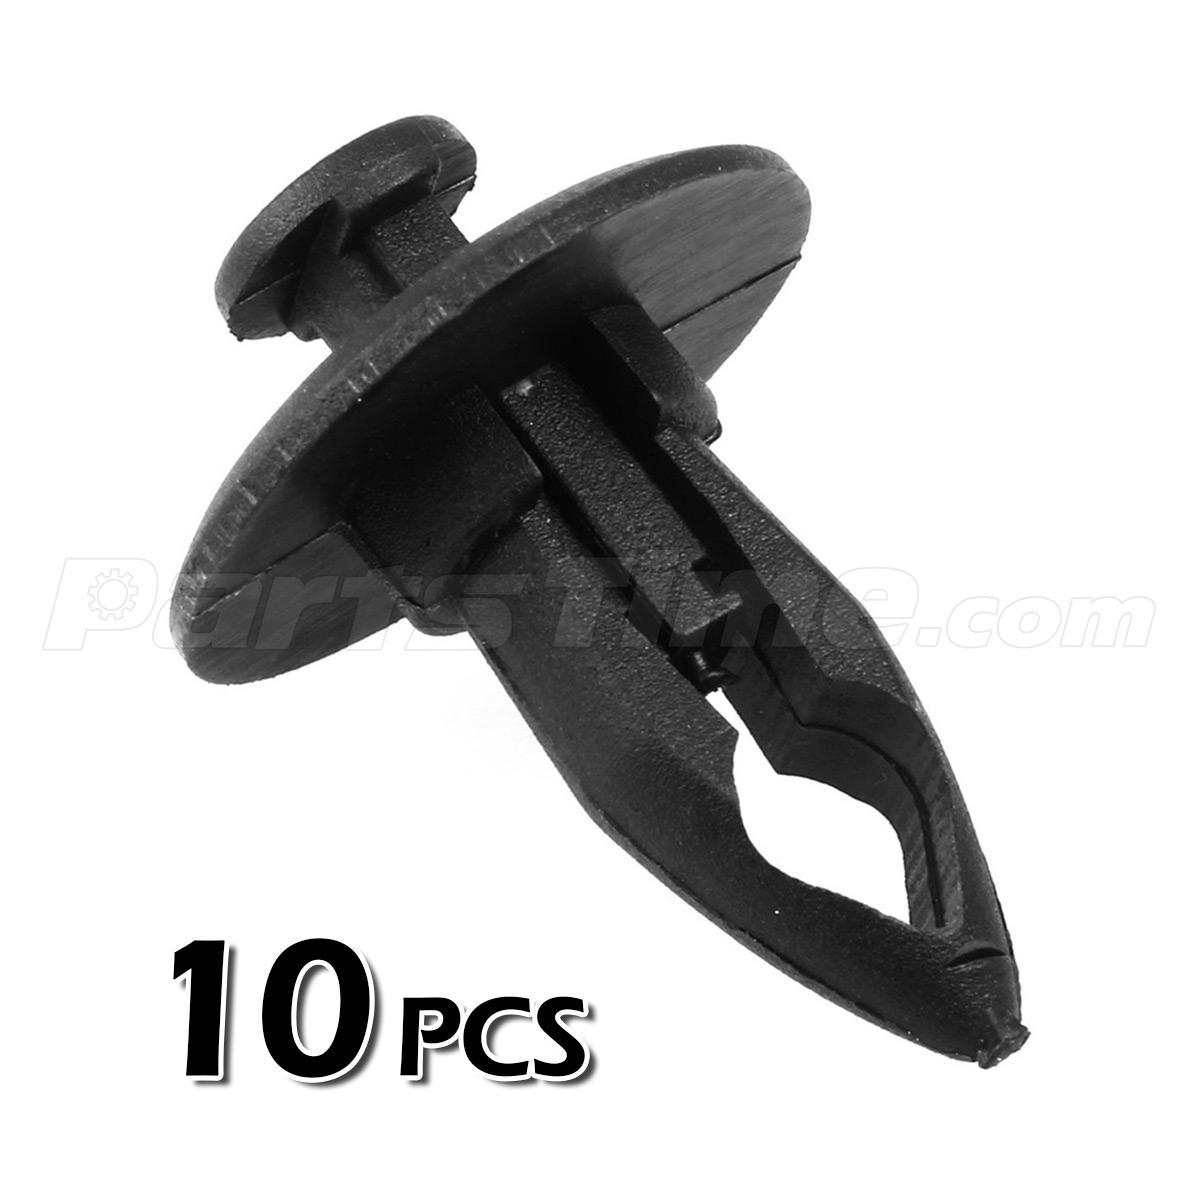 gm fasteners motors 10pcs fender bumper plastic panel fastener push tab rivet retainer clip for gm